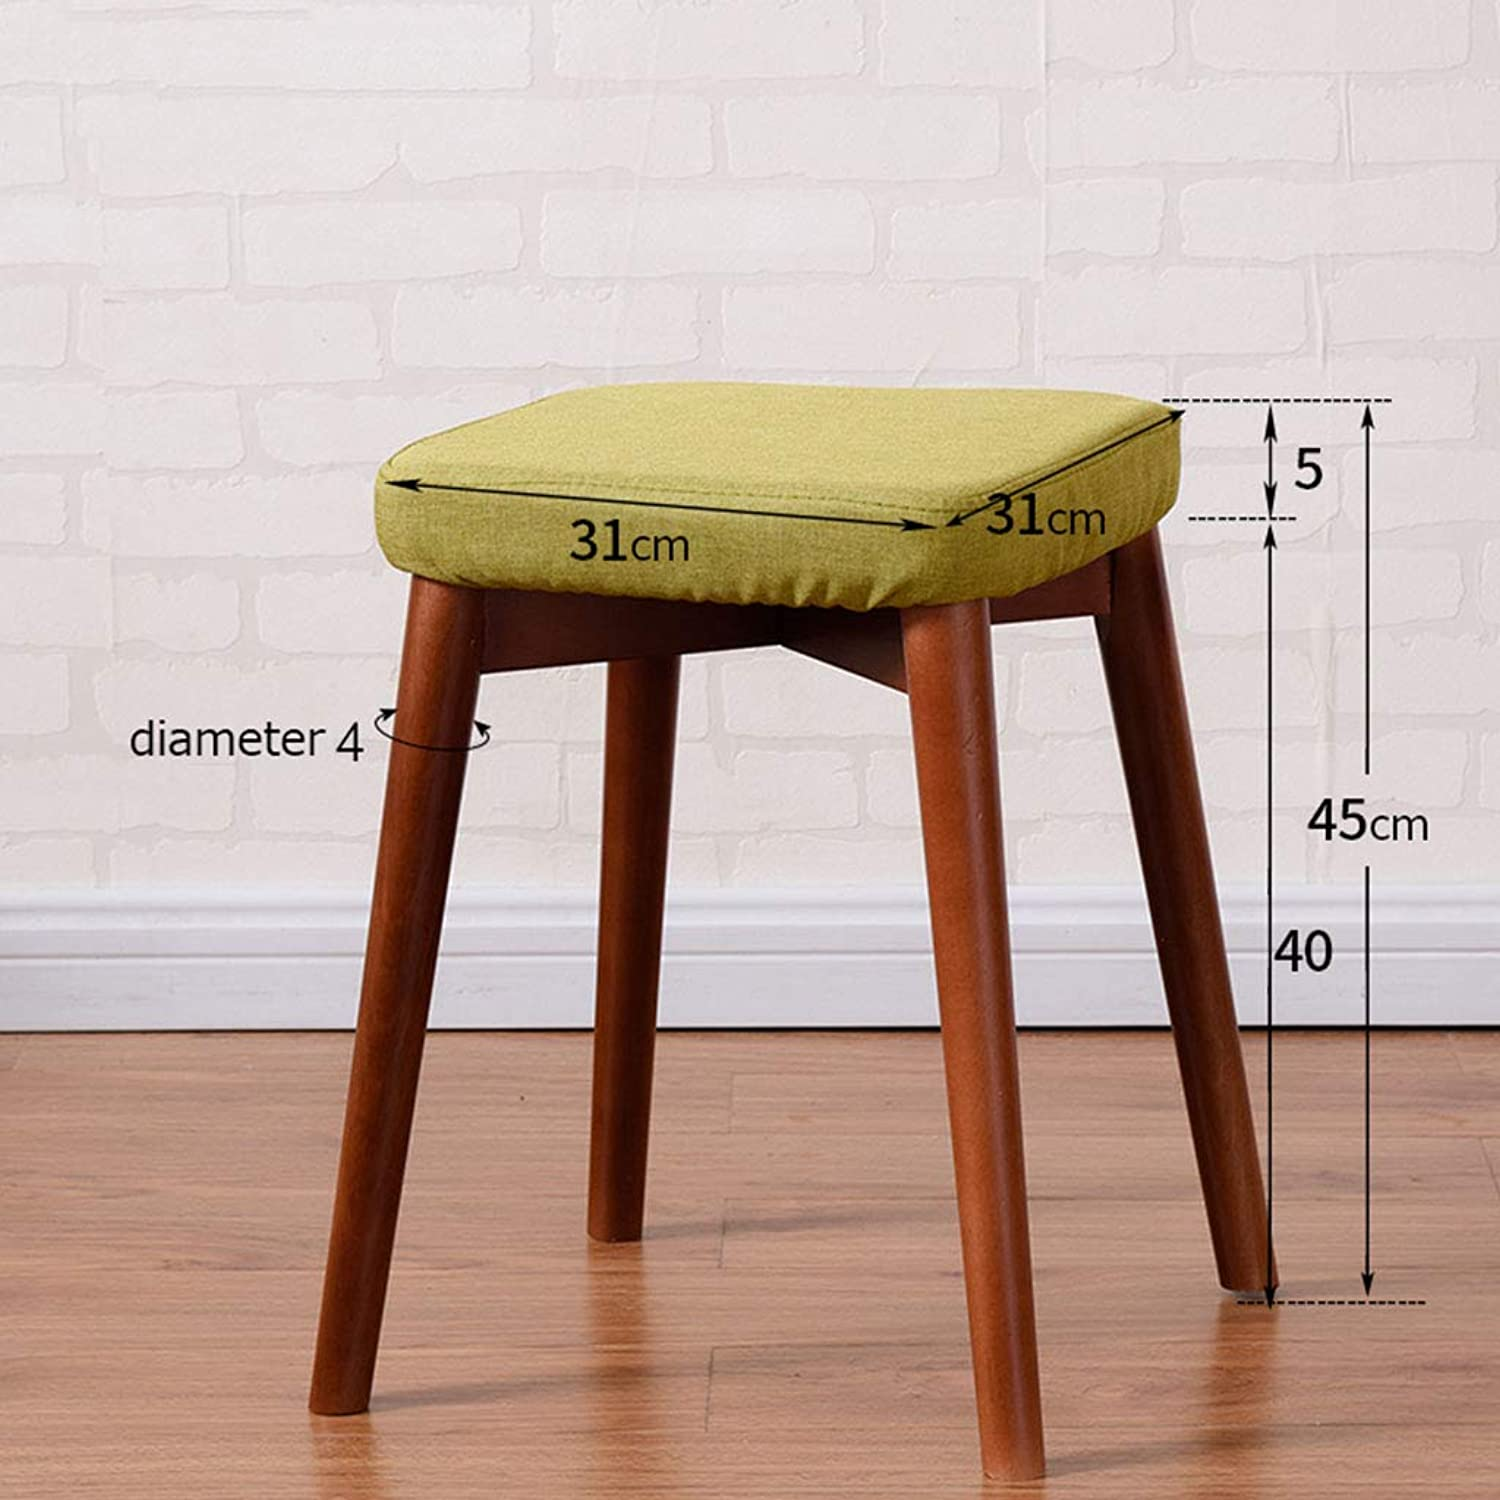 Solid Wood Stool Small Simple Fashion Modern Fabric Soft Square Stool Makeup Chair Home Dining Stool H 45Cm,B